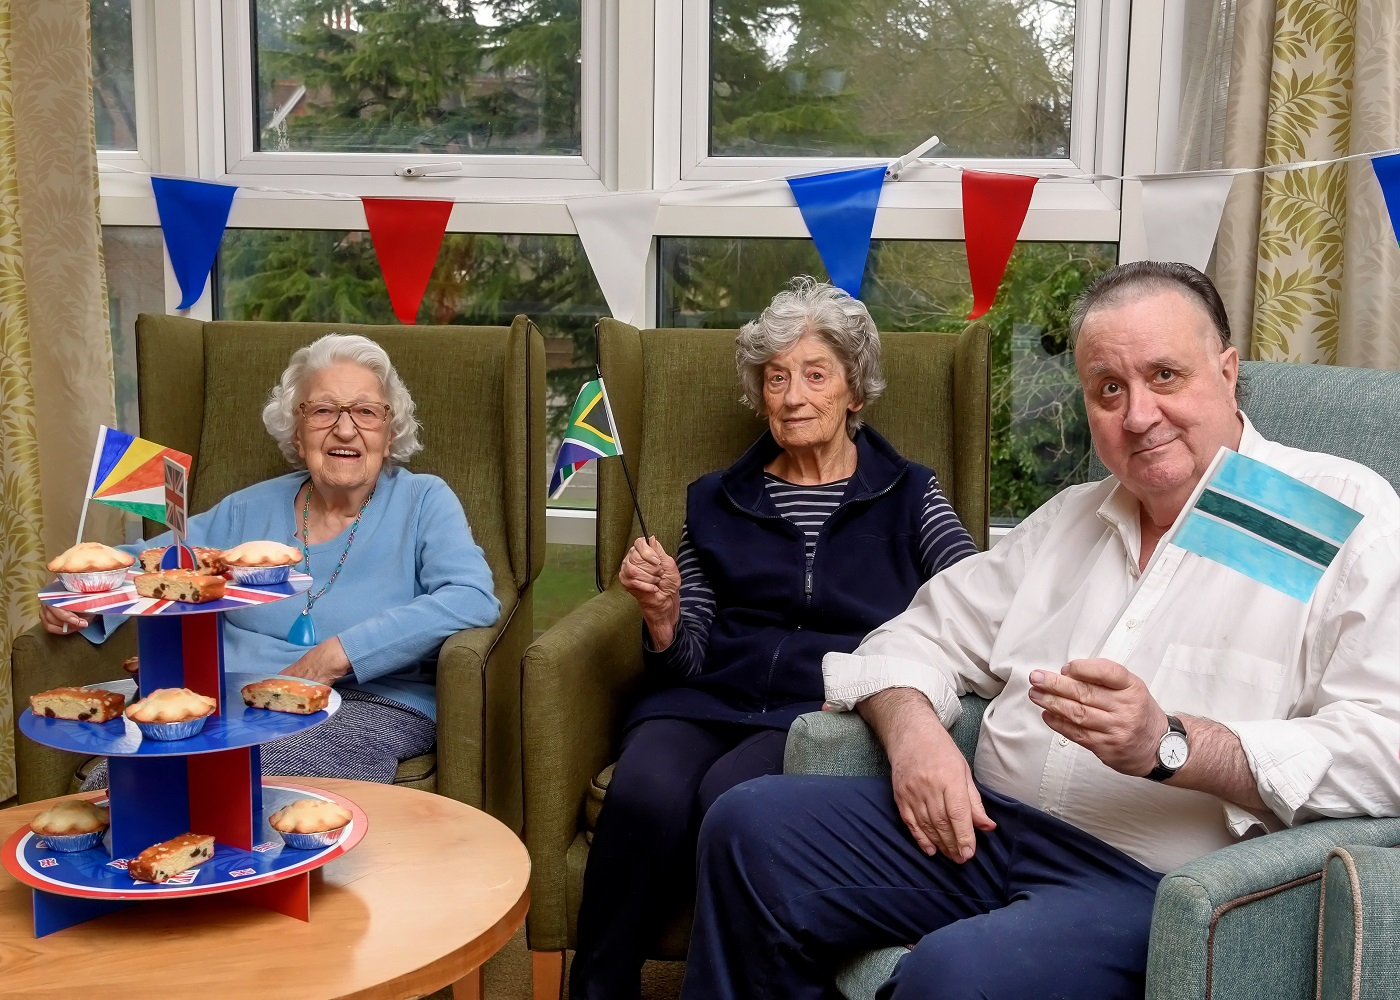 Harrow care home wants to build 'lasting relationships' with community